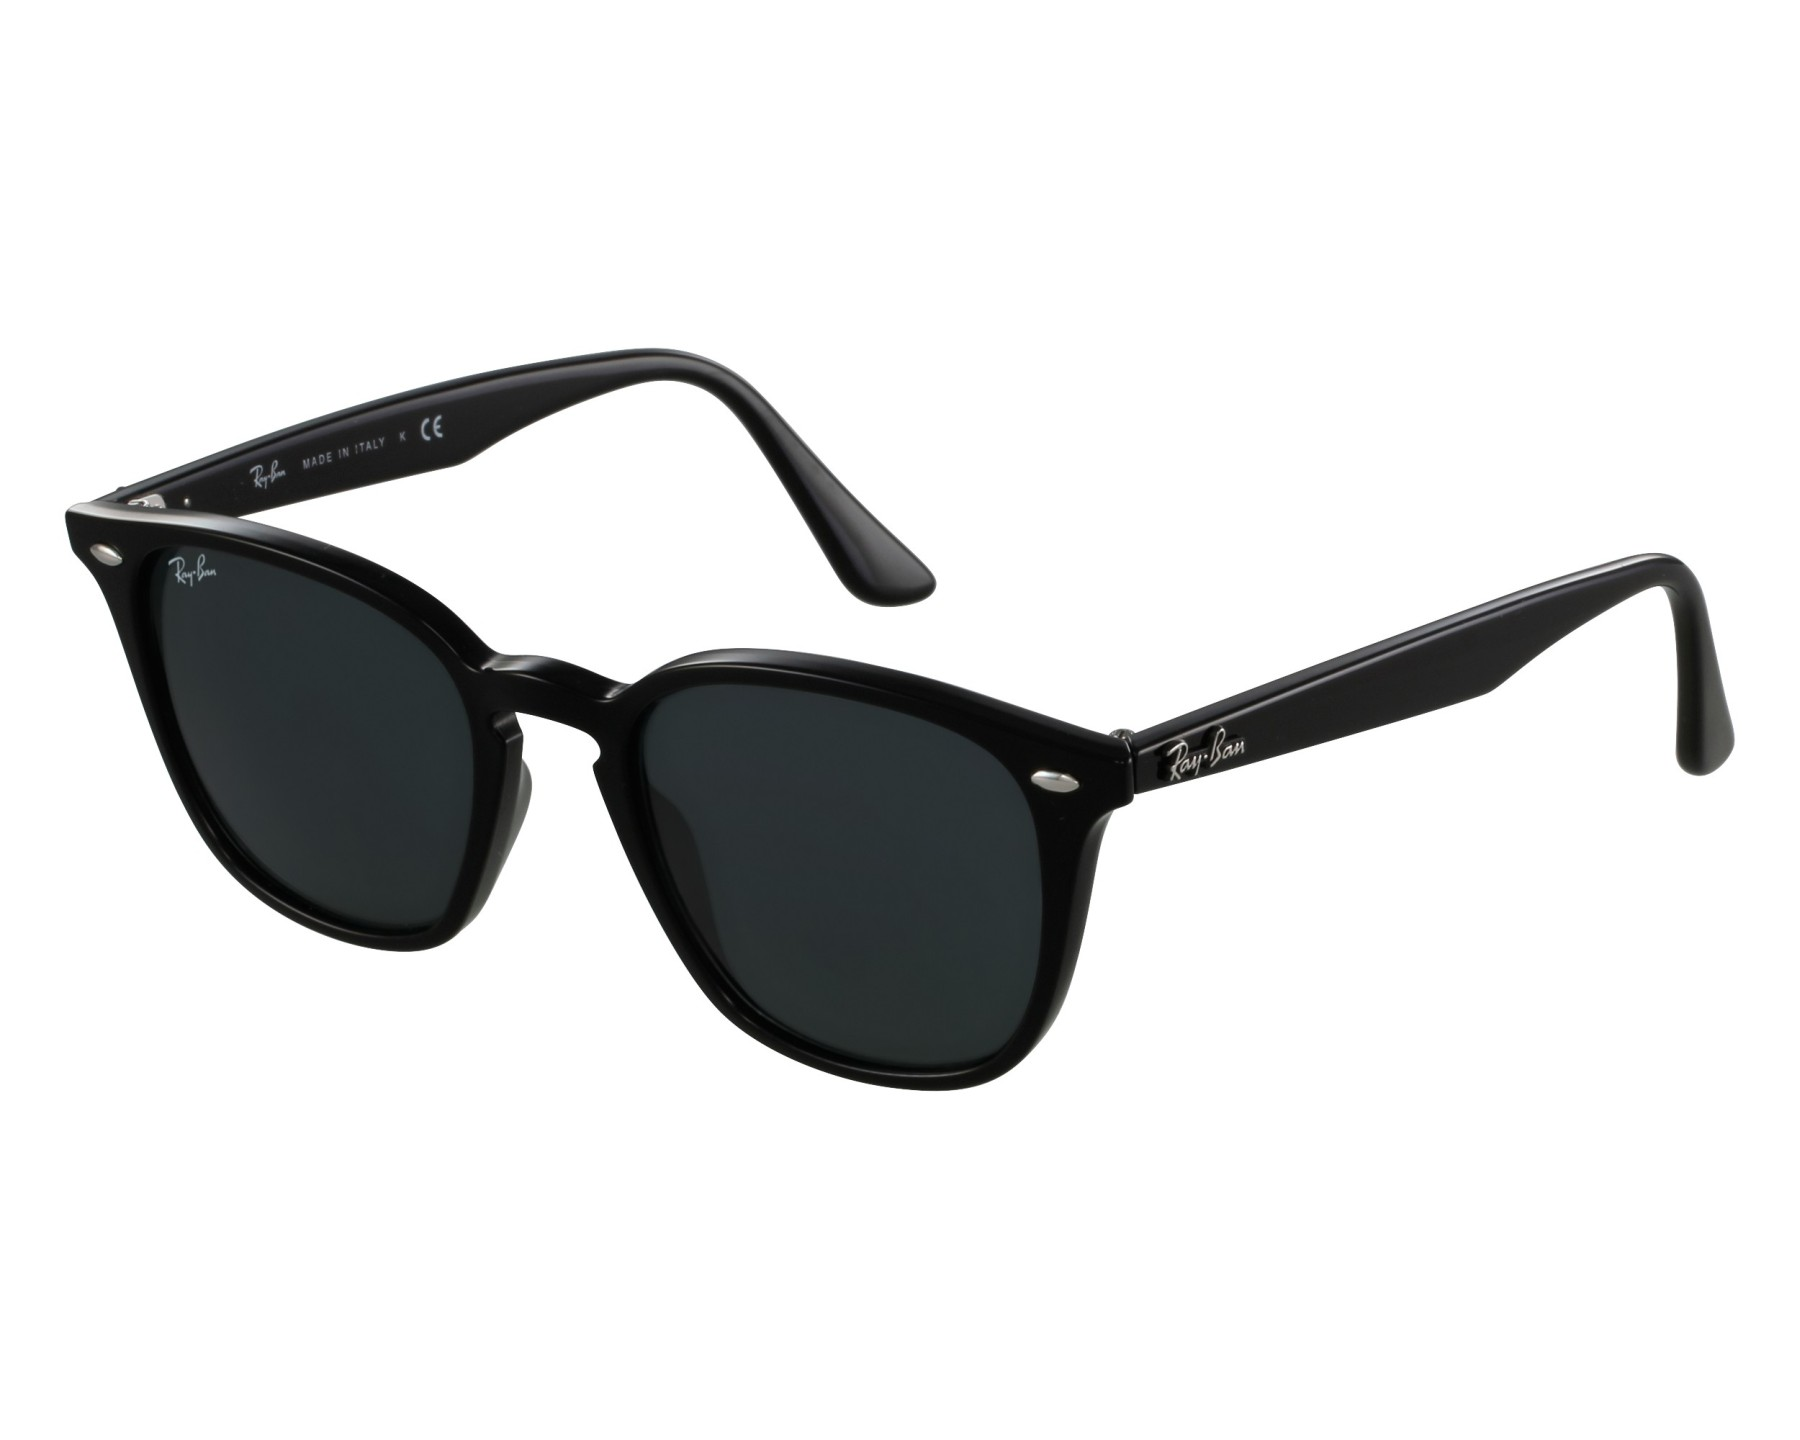 ed0ac6b6f8 thumbnail Sunglasses Ray-Ban RB-4258 601 71 - Black front view